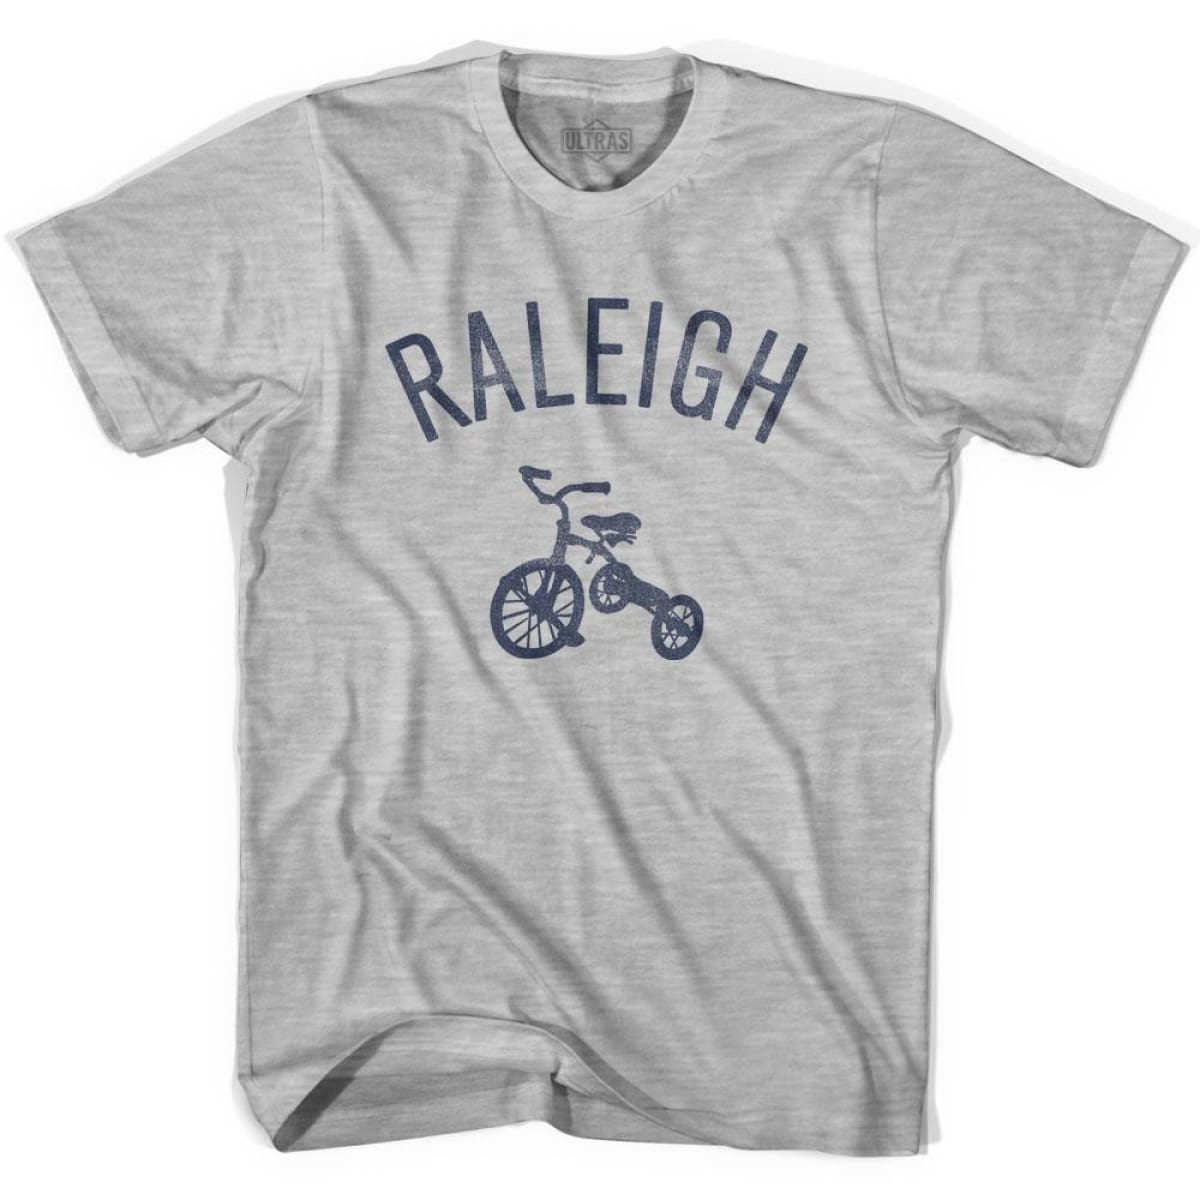 Raleigh City Tricycle Youth Cotton T-shirt - Tricycle City